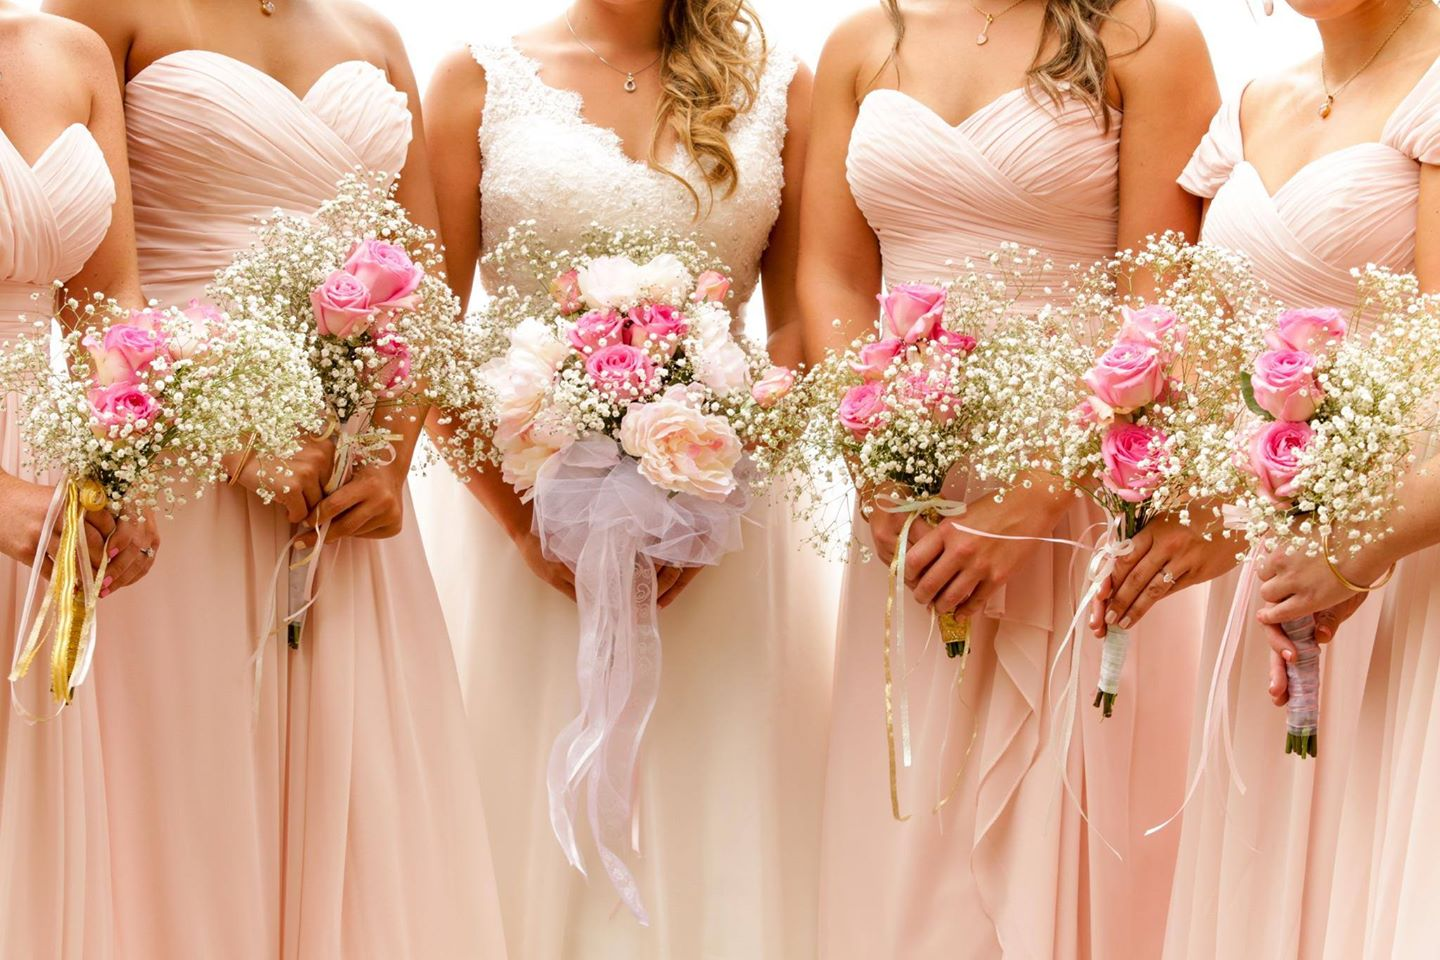 Wedding Flowers - Money Saving Tips - WeddingsAbroad.com